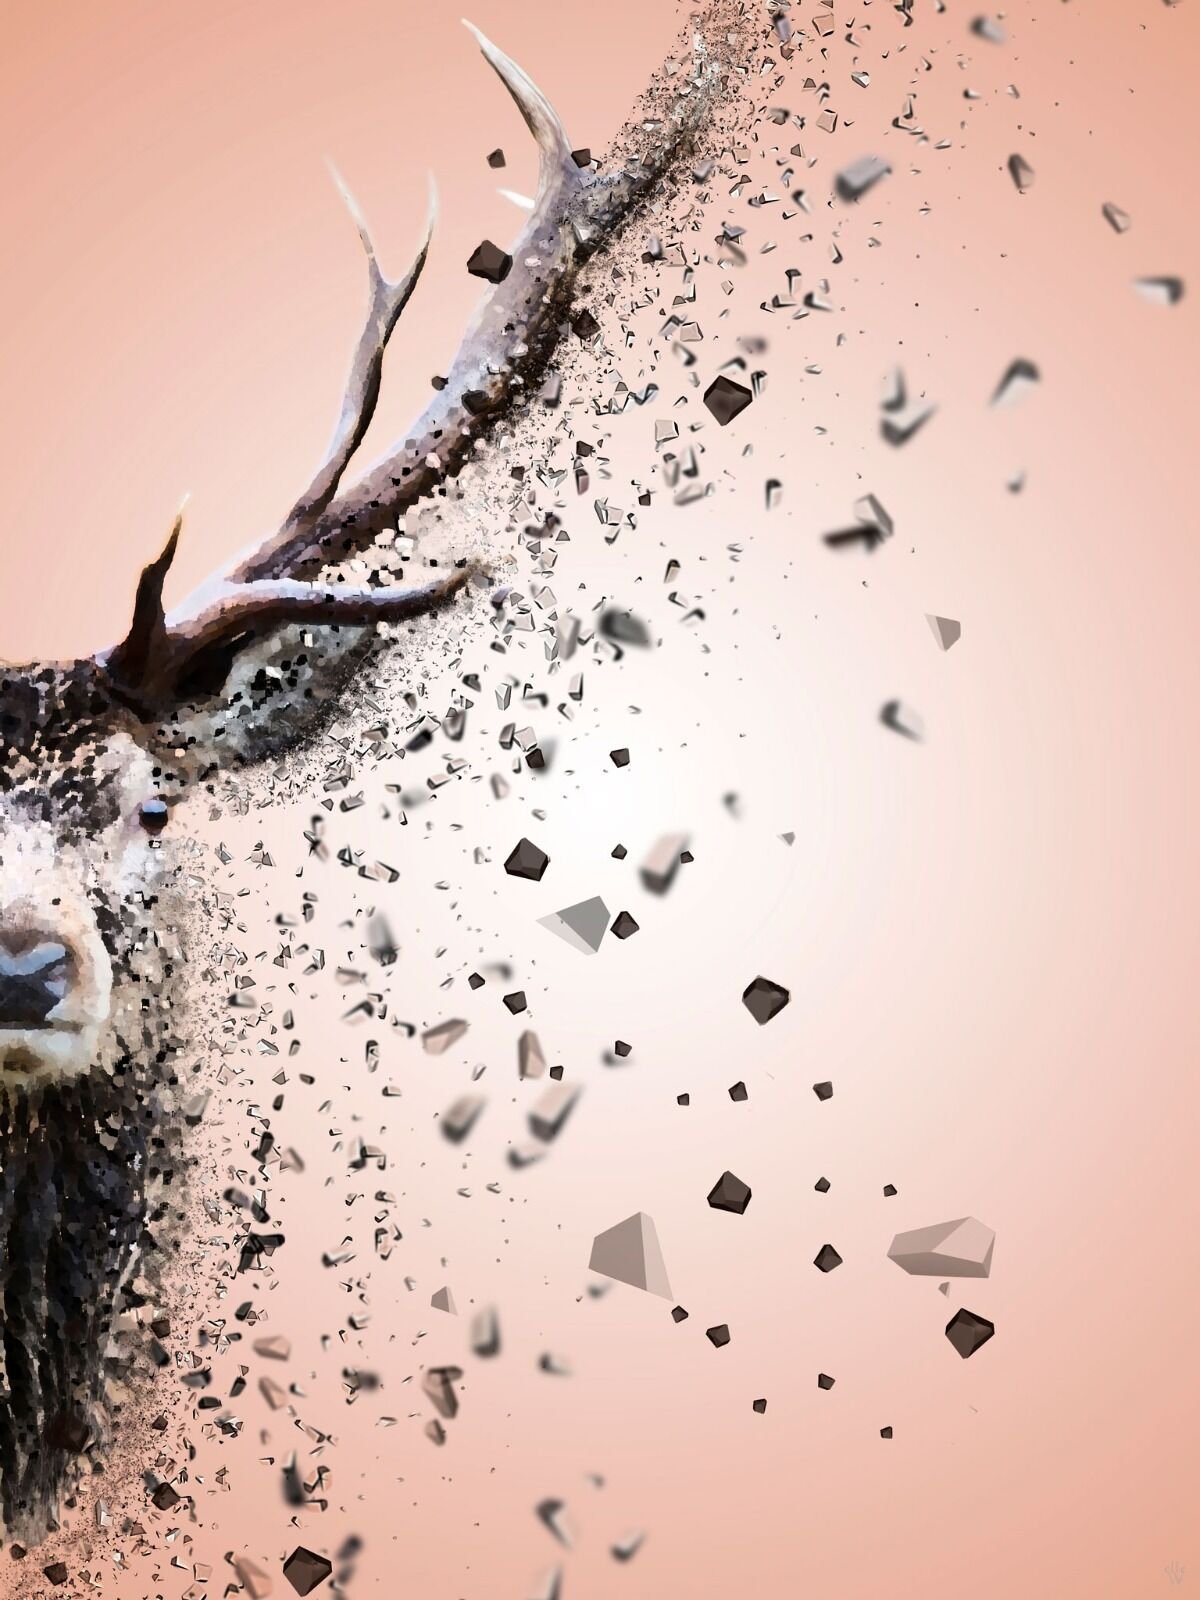 Stag - Dispersion Effect